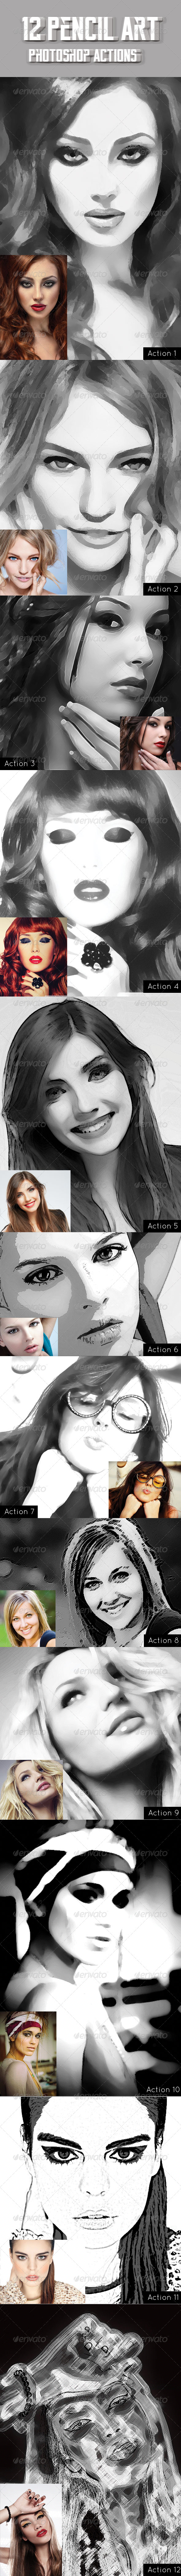 GraphicRiver Pencil Art Actions 7931005